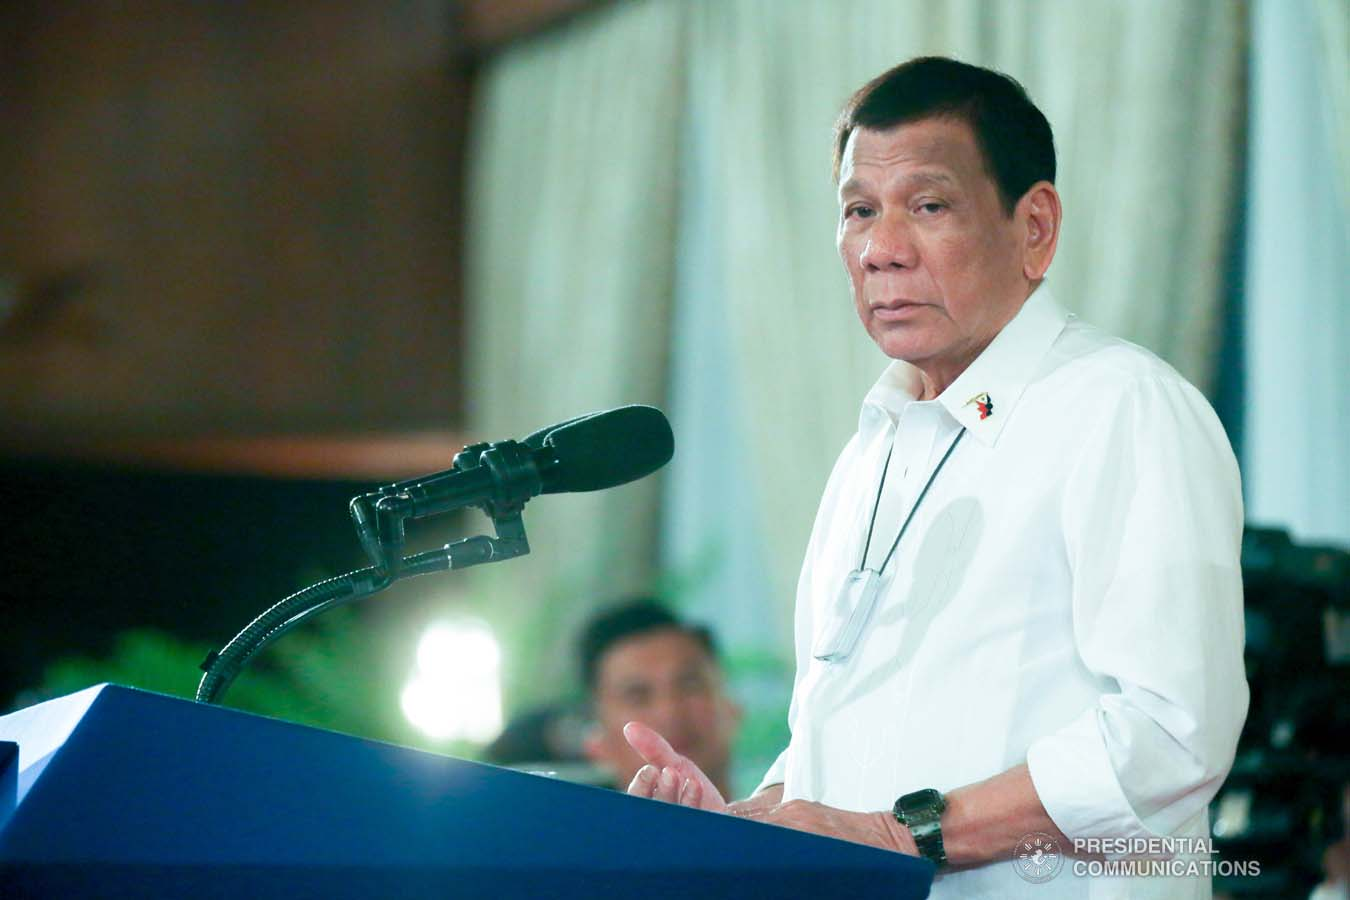 President Rodrigo Roa Duterte delivers a speech during the oath-taking of the new officials of the National Commission for Culture and the Arts (NCCA) and presentation of the 12th Ani ng Dangal awardees at the Malacañan Palace on February 26, 2020. SIMEON CELI JR./PRESIDENTIAL PHOTO